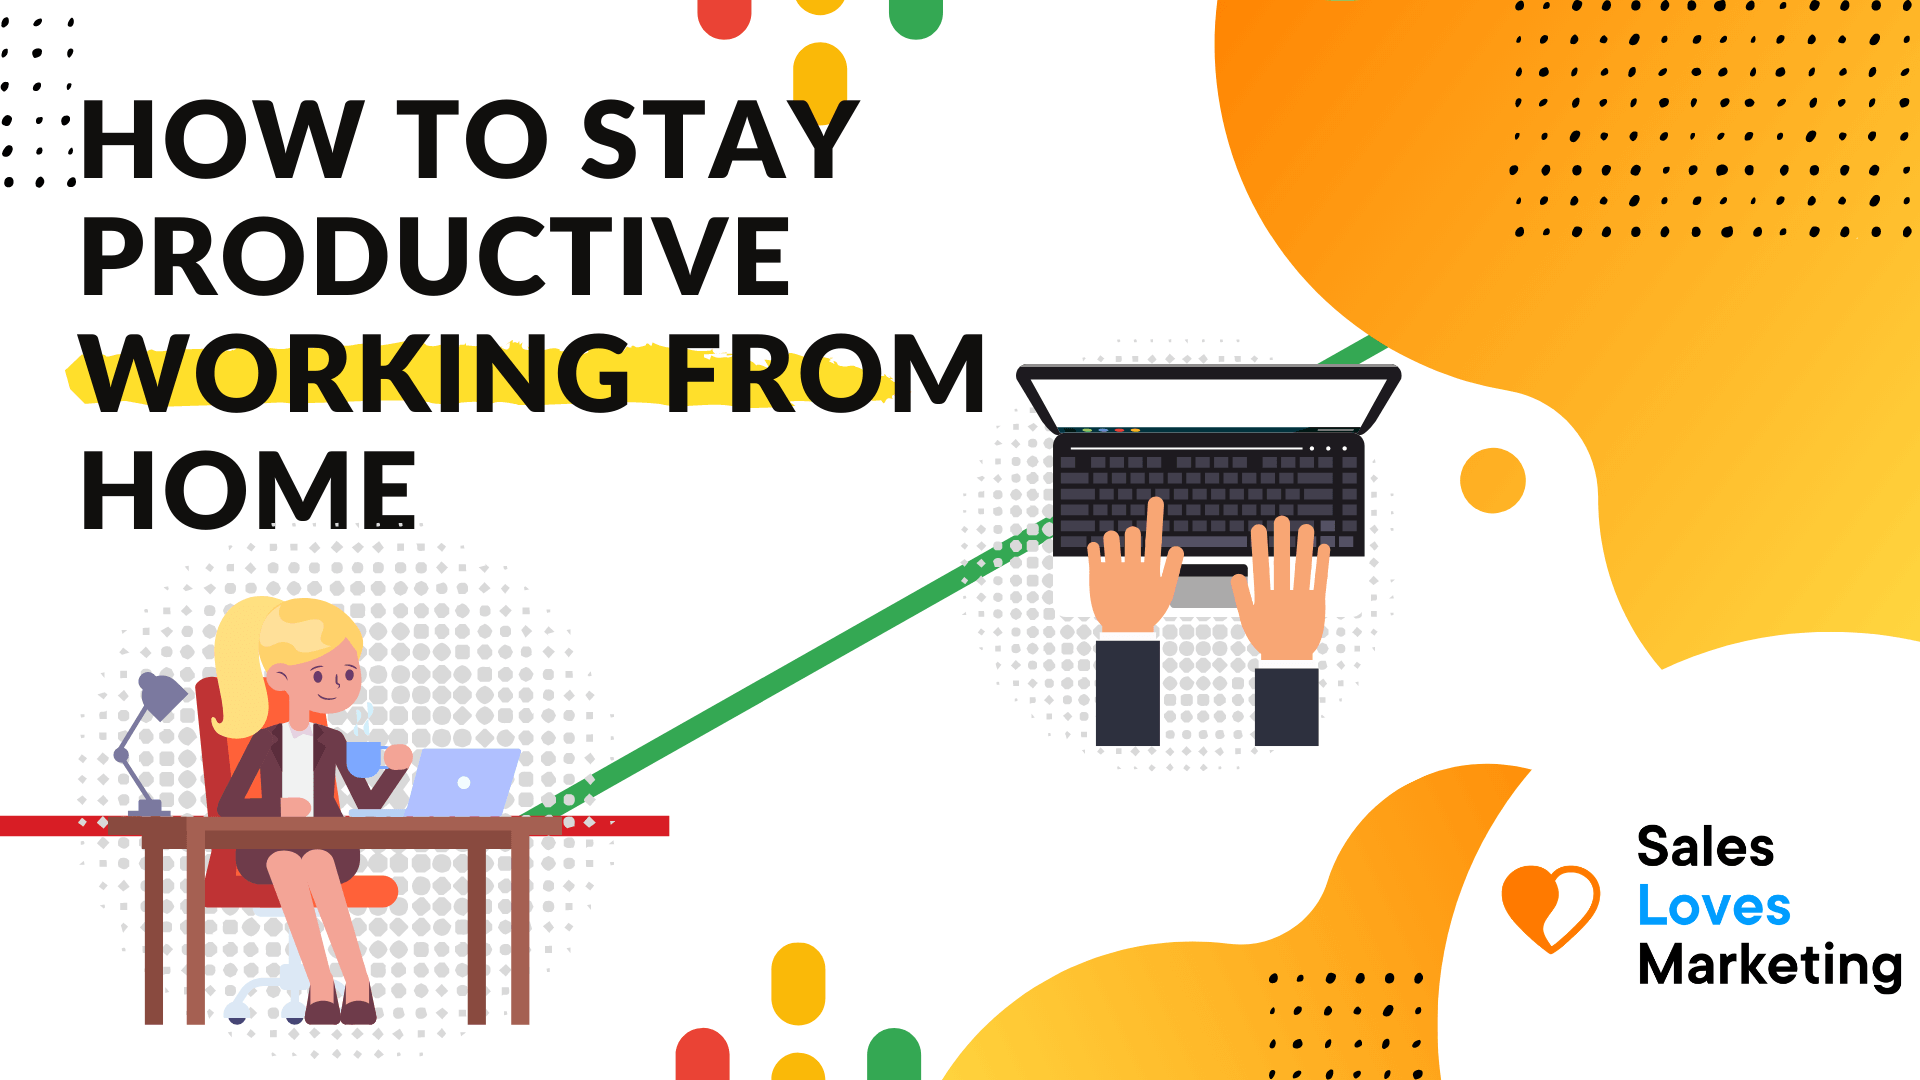 How to stay productive during the covid-19 pandemic